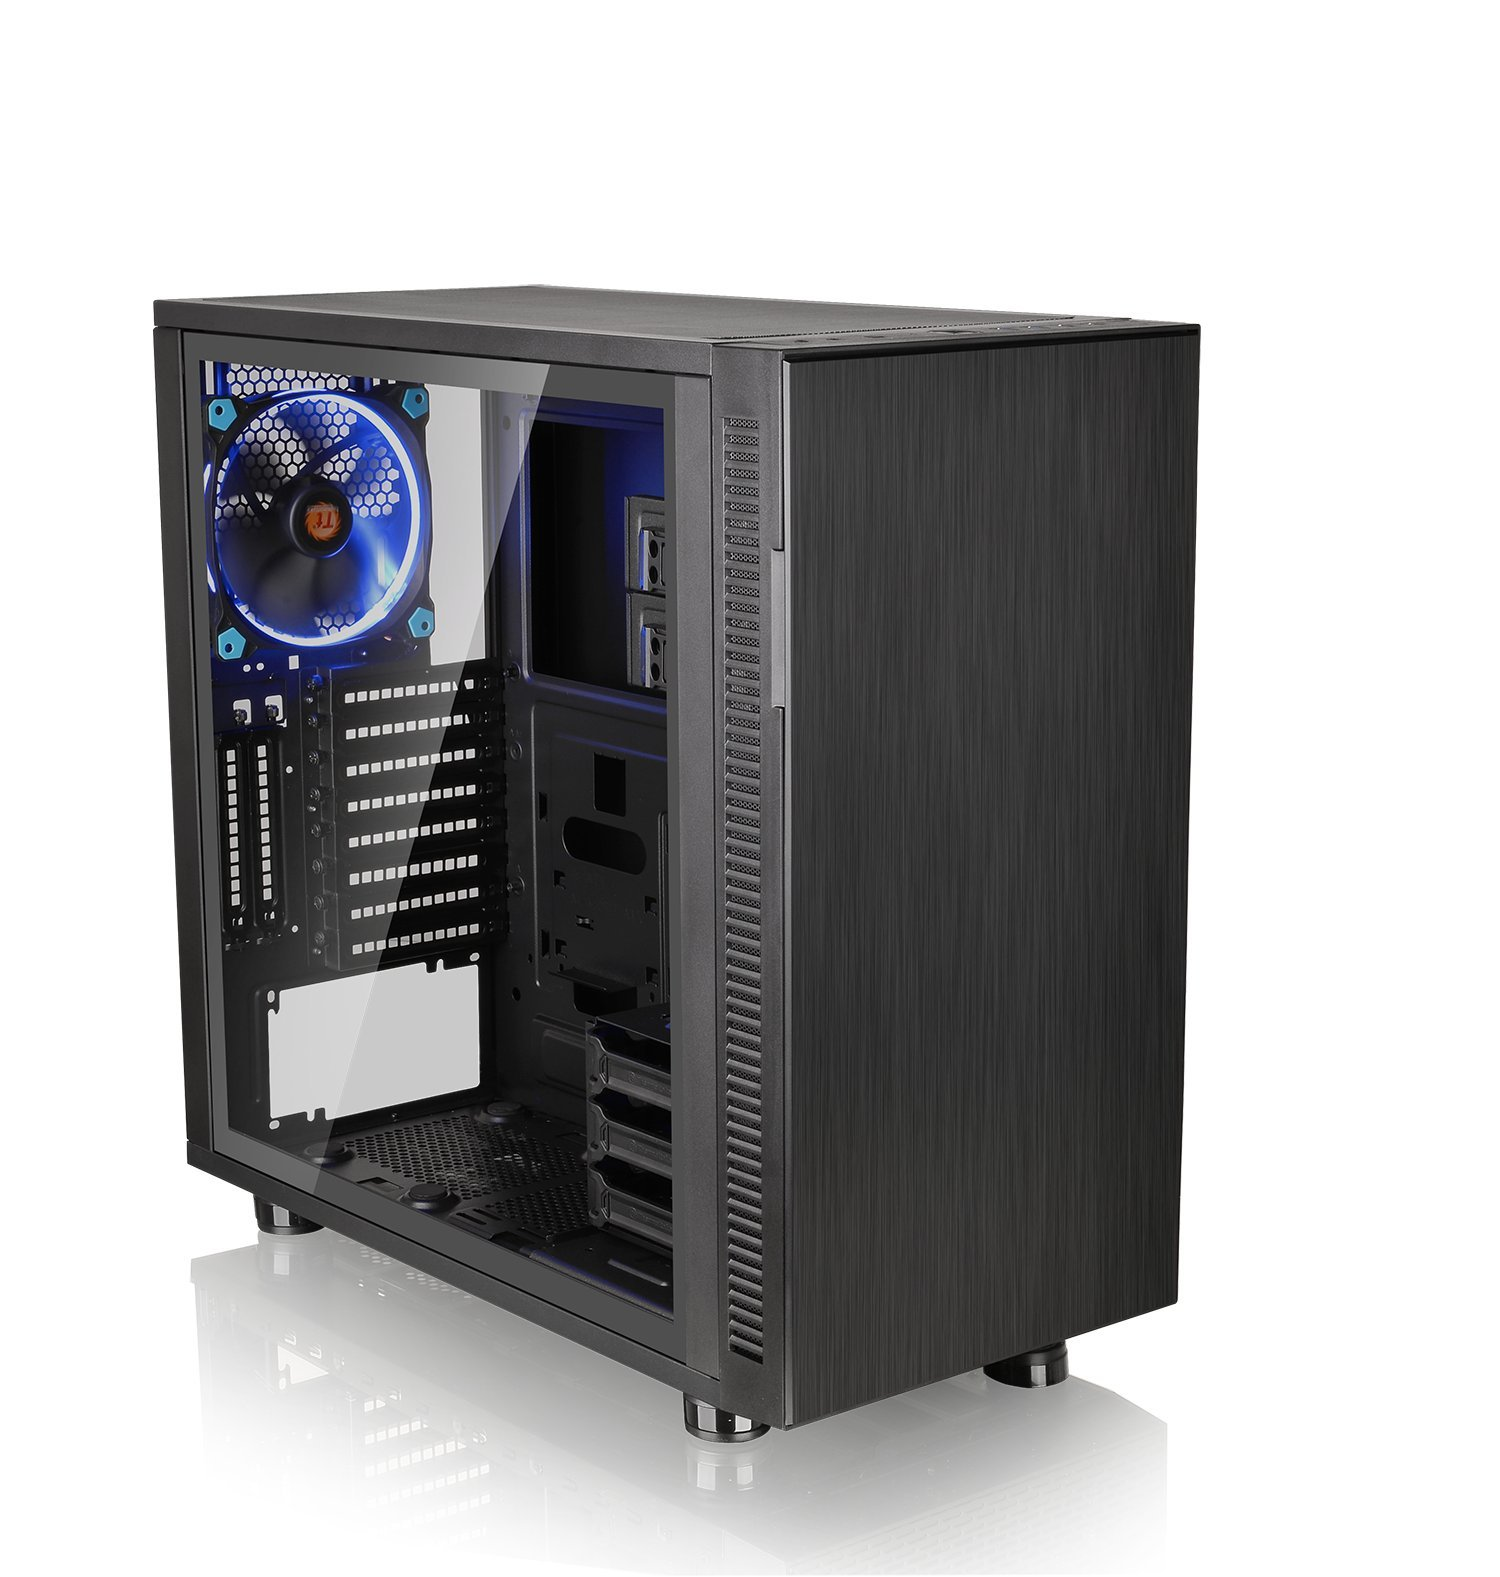 Thermaltake Suppressor F31 Tempered Glass Edition SPCC ATX Mid Tower Tt LCS Certified Ultra Quiet Gaming Silent Computer Chassis CA-1E3-00M1WN-03